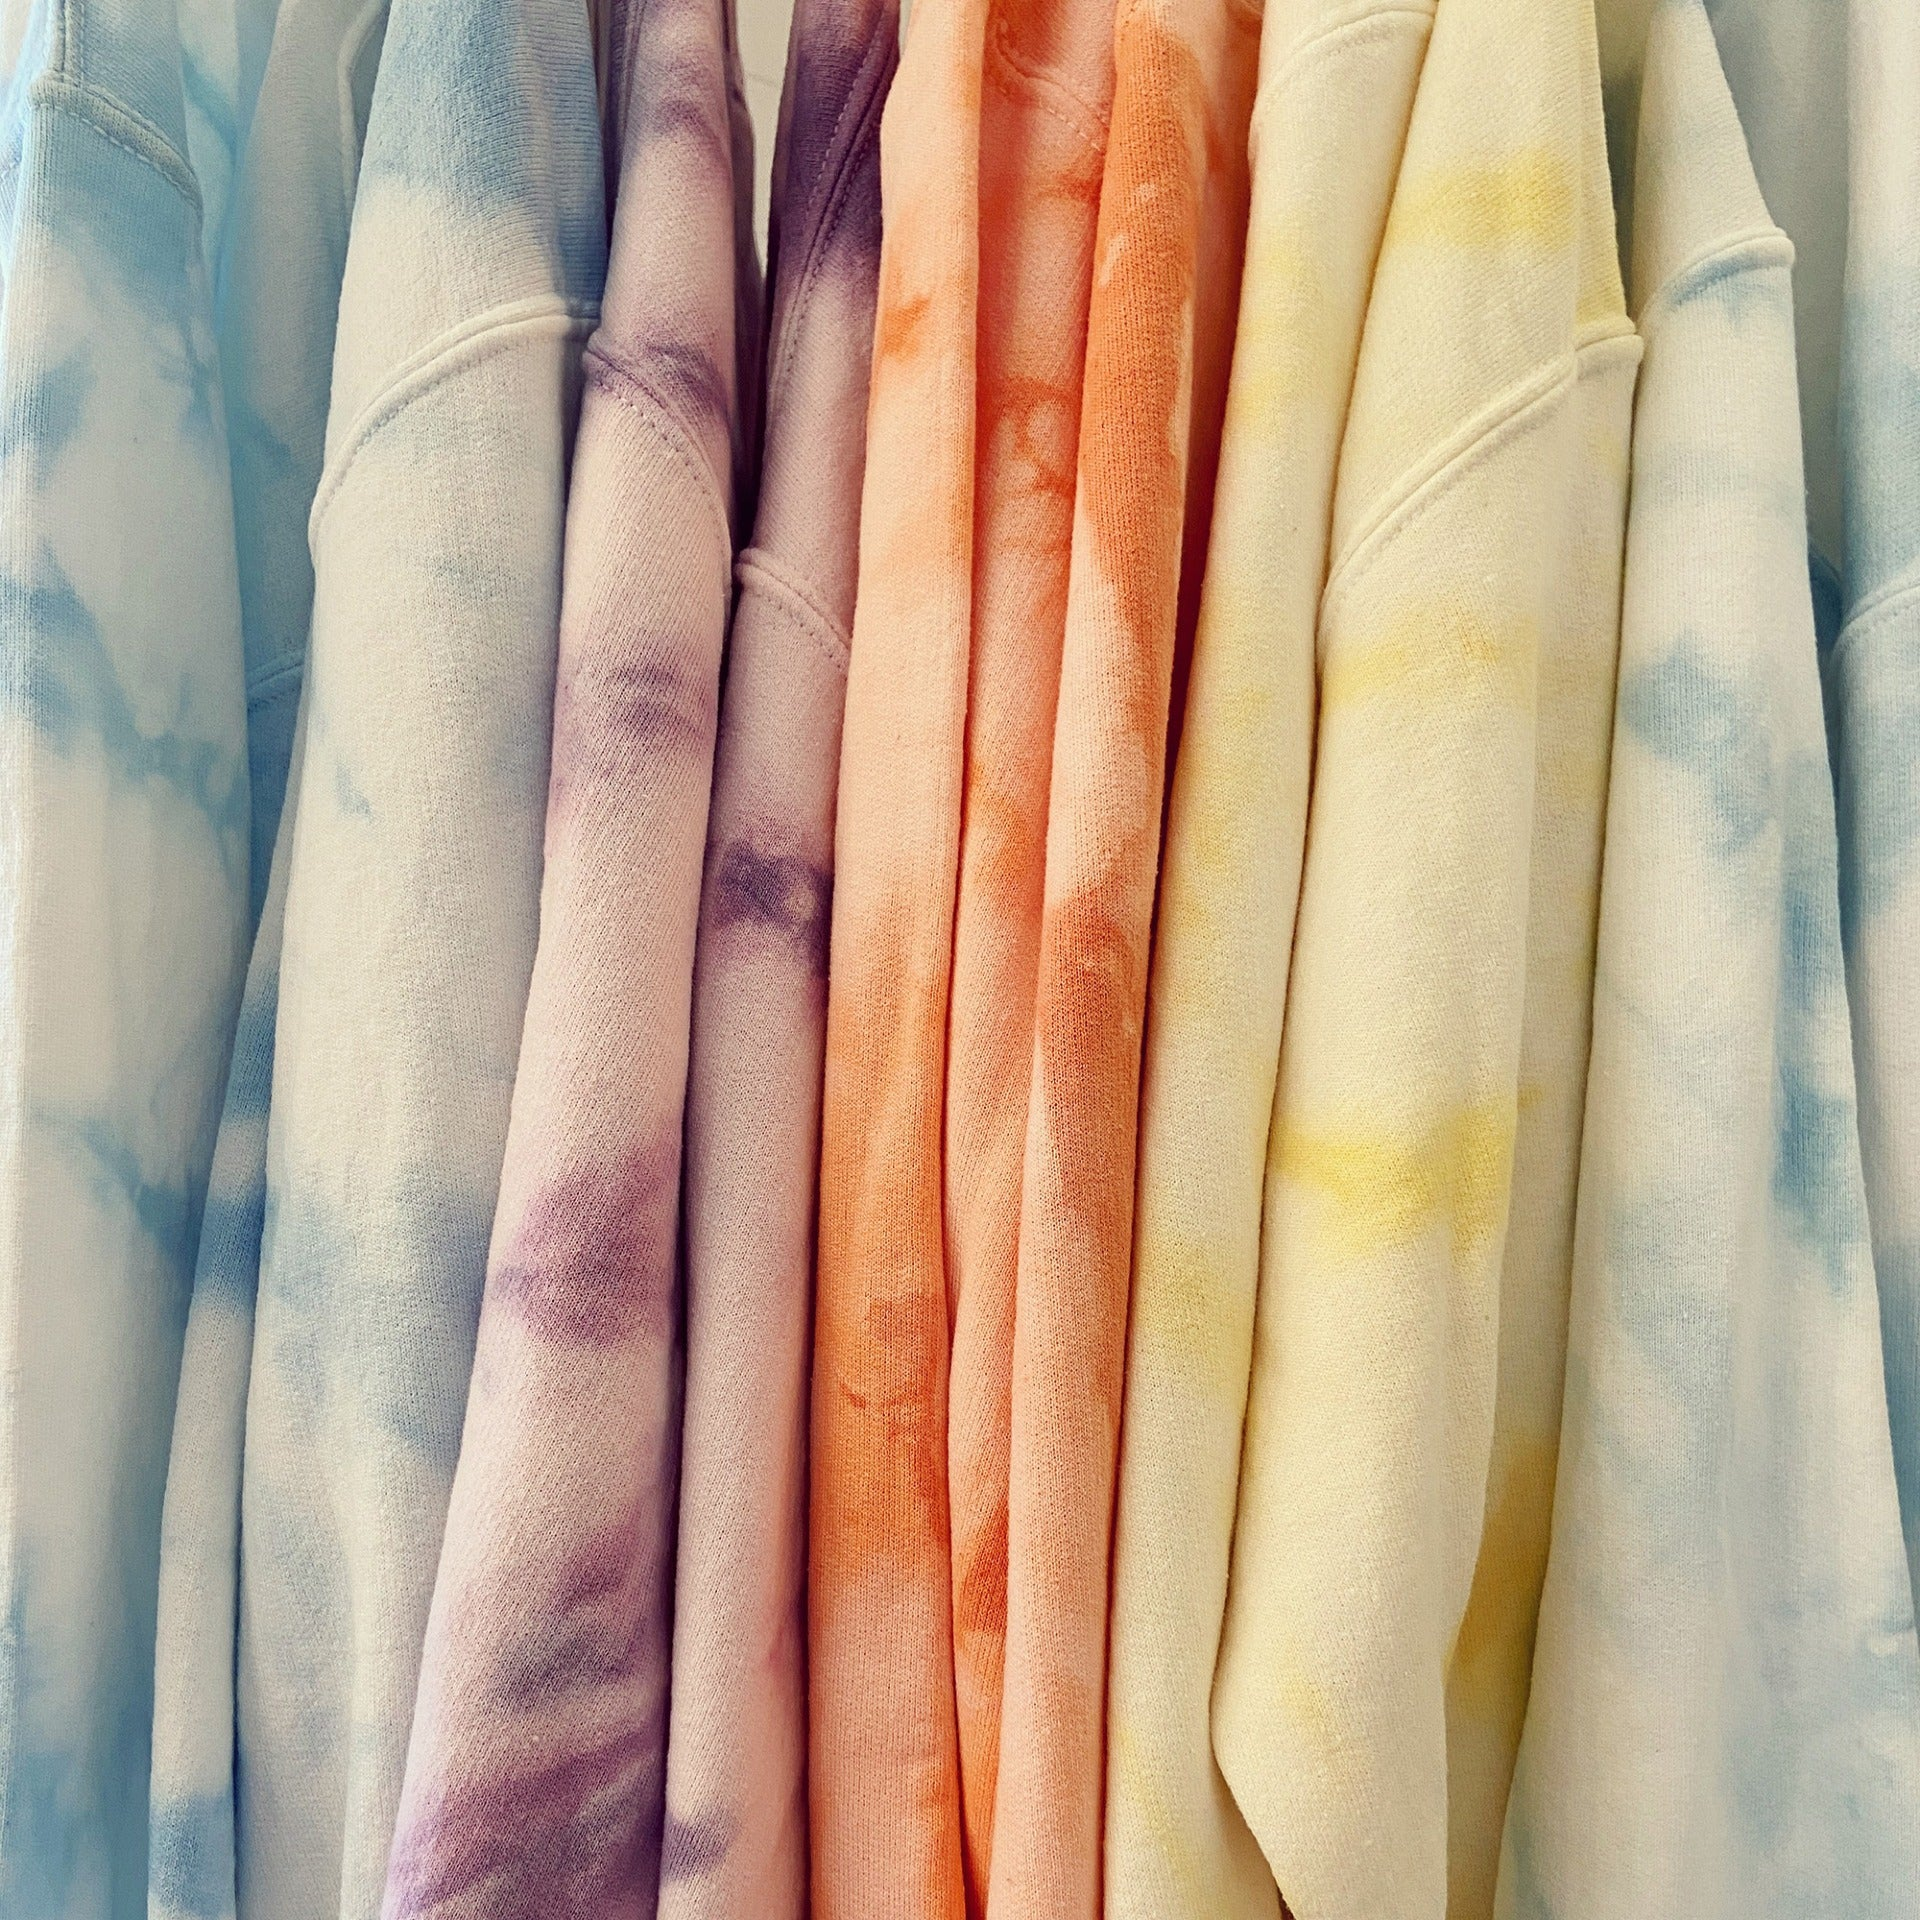 One of a kind tie dye crew neck sweaters from Viens Avec Moi.